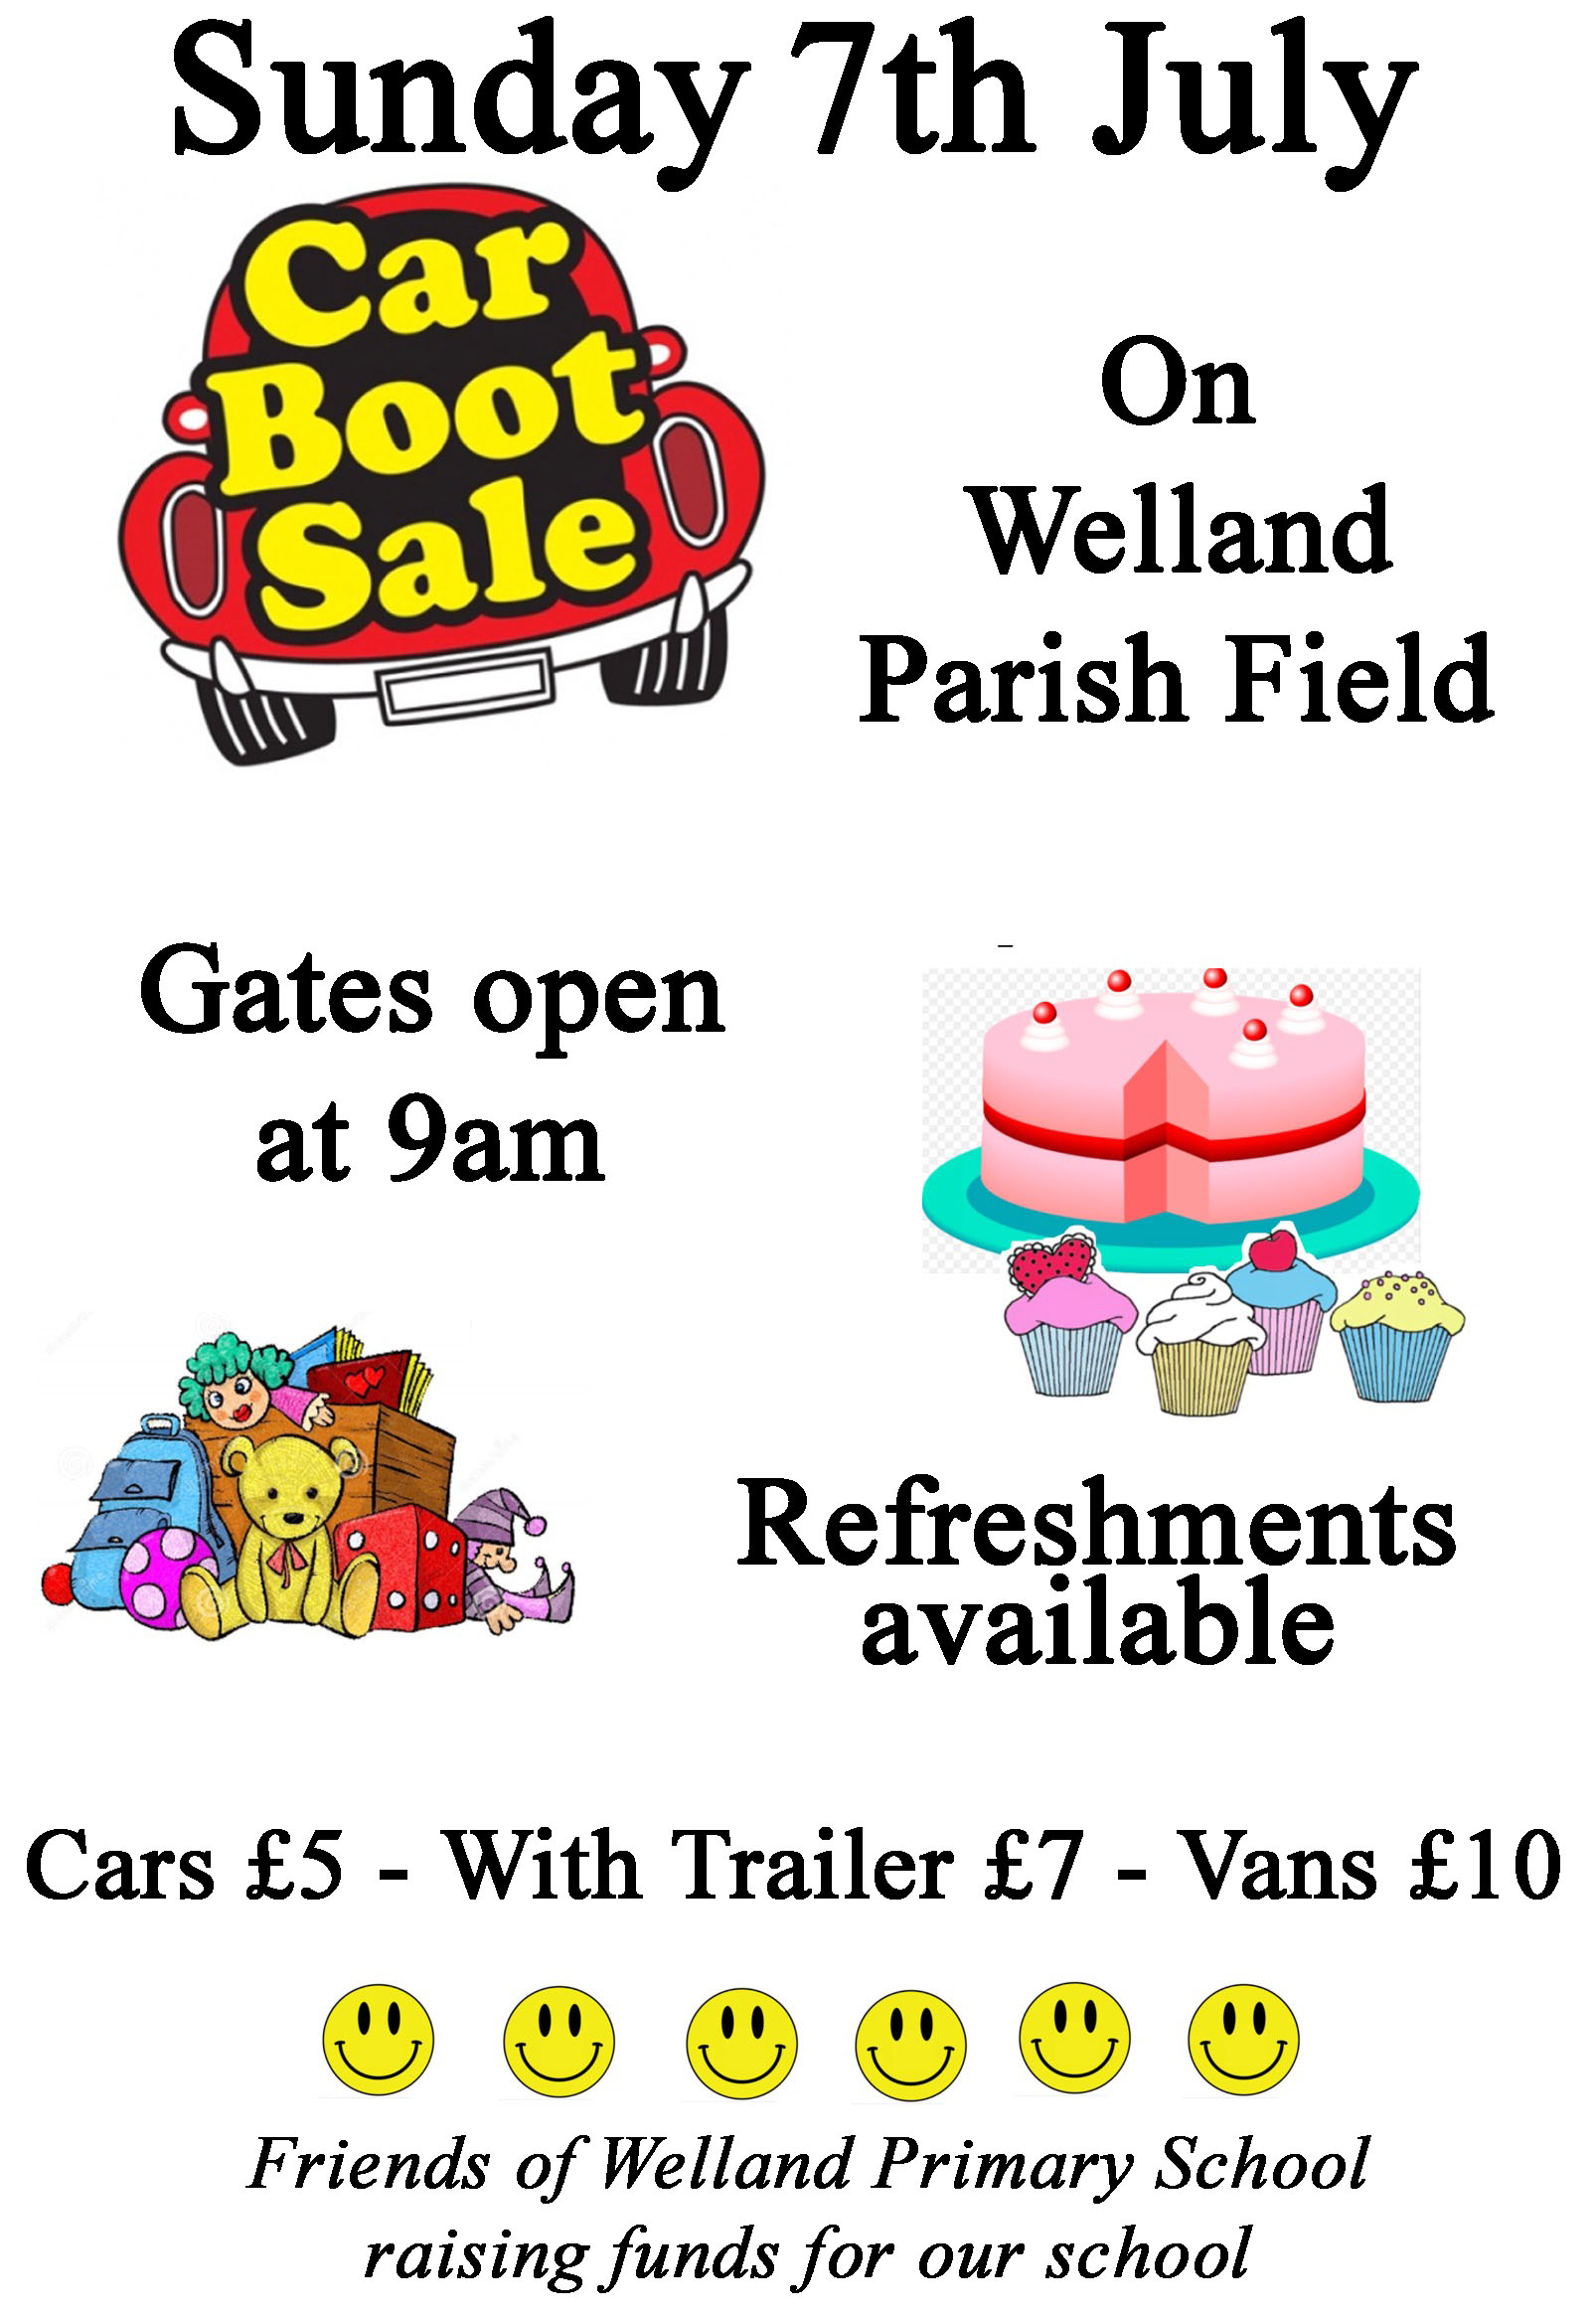 Friends of Welland Primary School Car Boot Sale